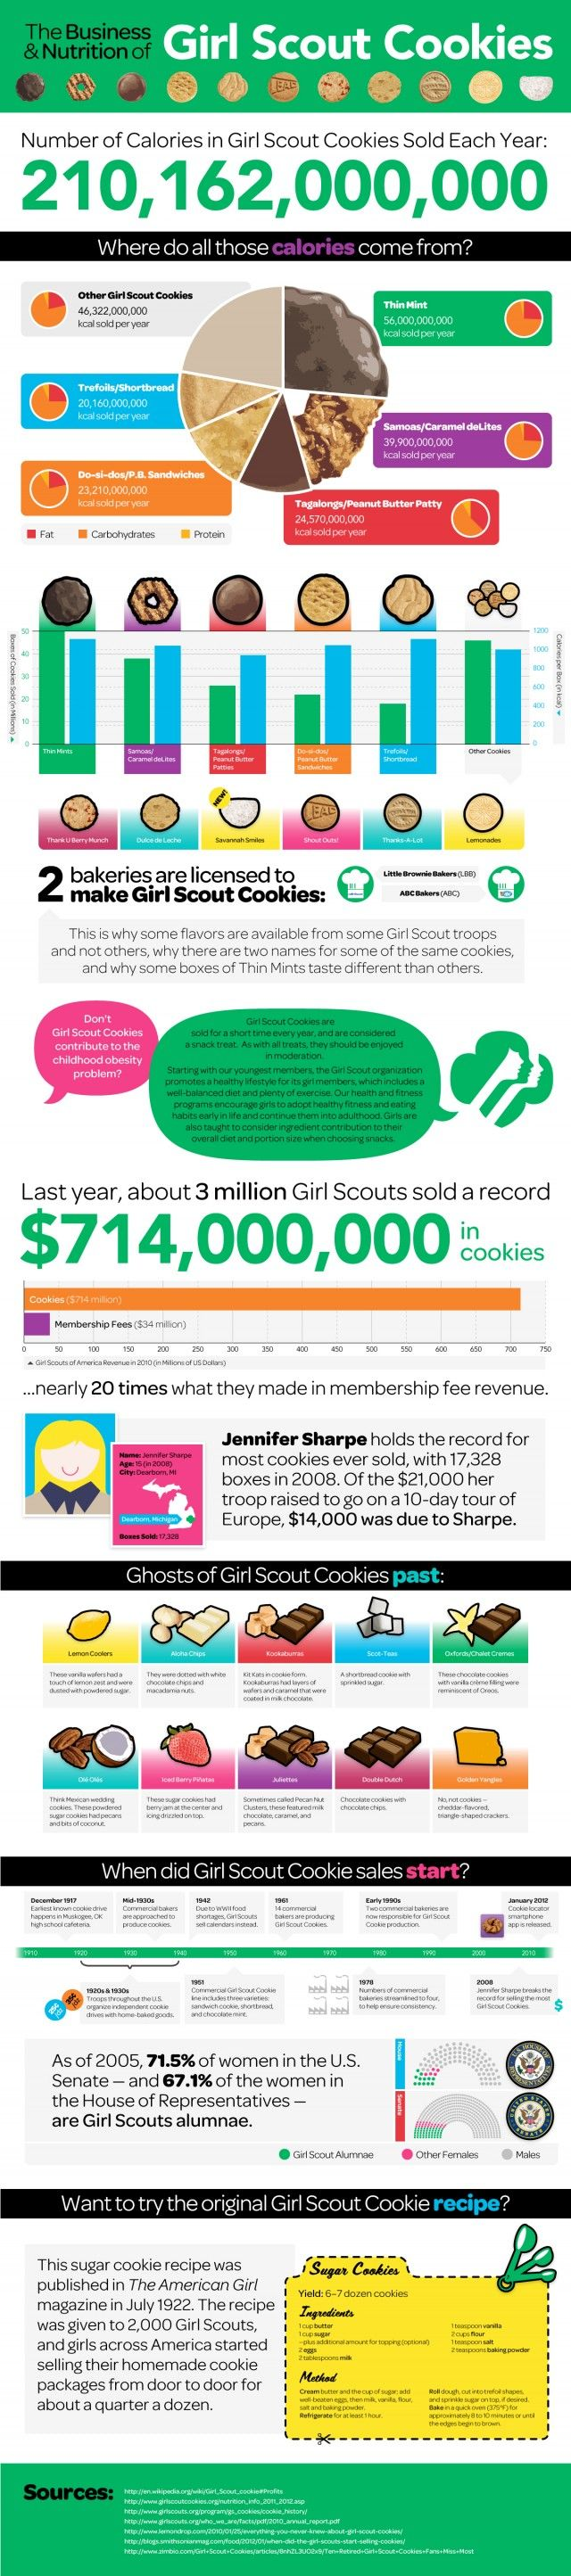 Girl Scout Cookies...